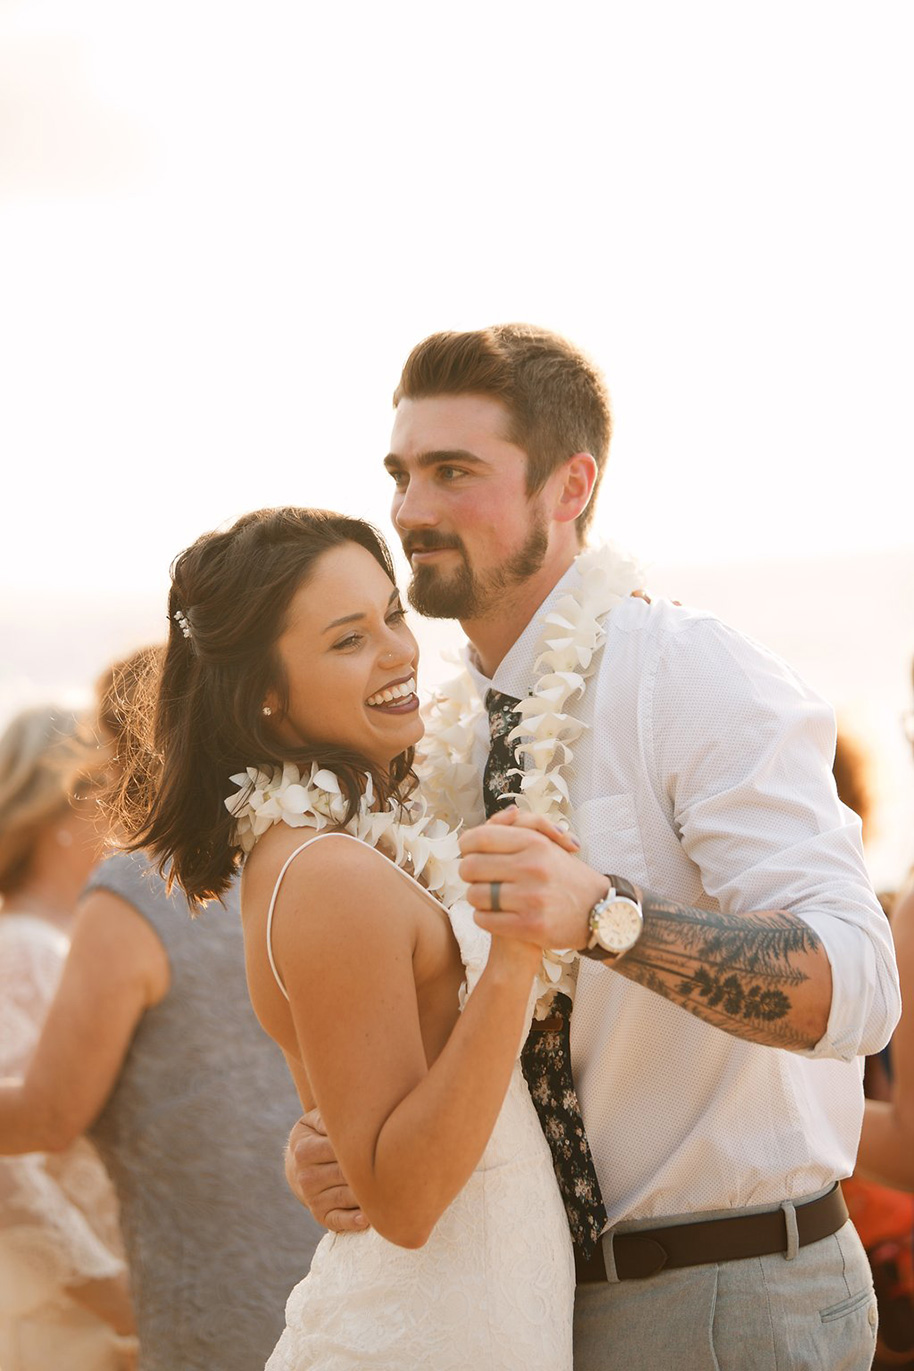 Maui-Beach-Wedding-070616-16.jpg